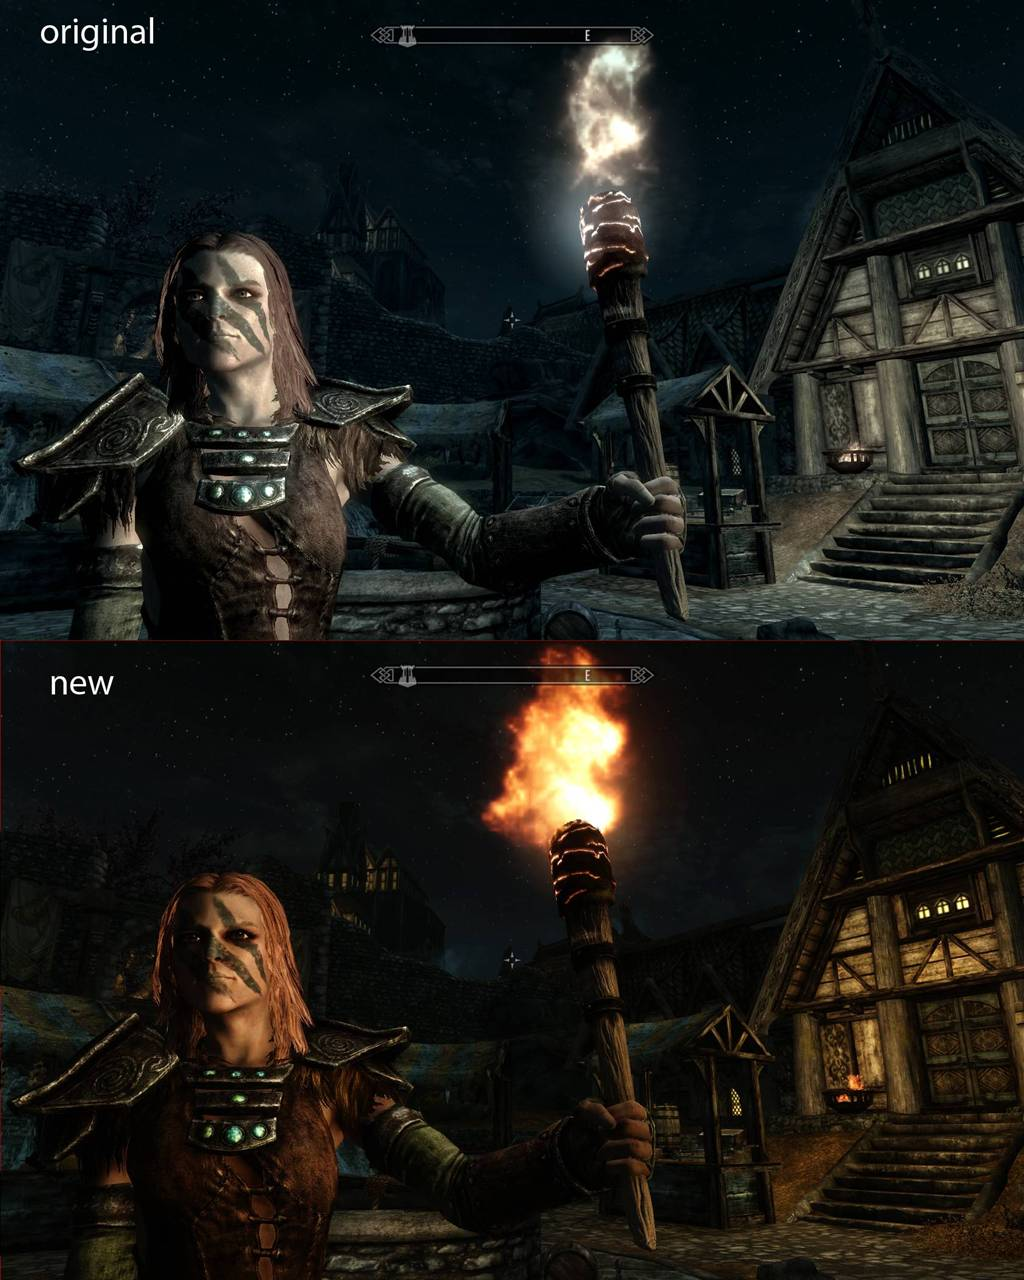 Latest Lighting and Realistic Colours mod for Skyrim Transforms the game